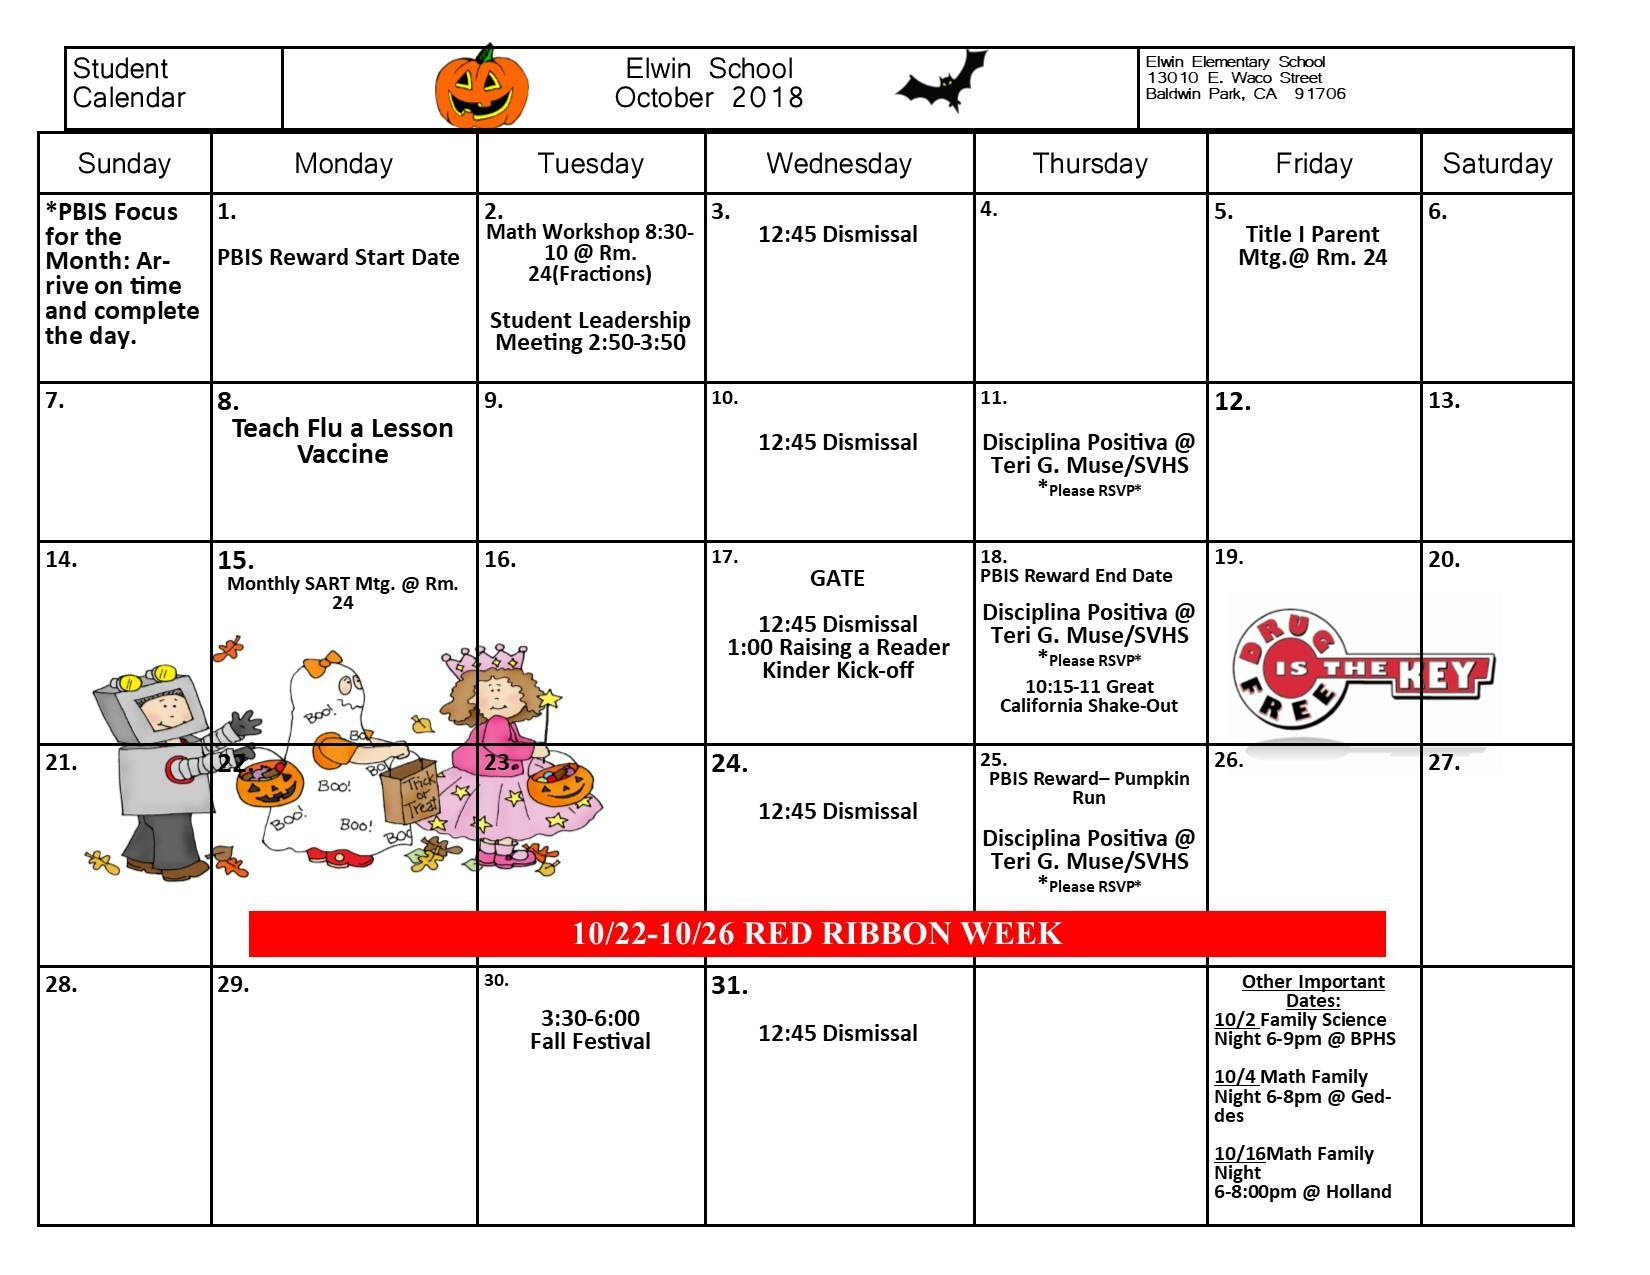 Calendar of Events for the month of October